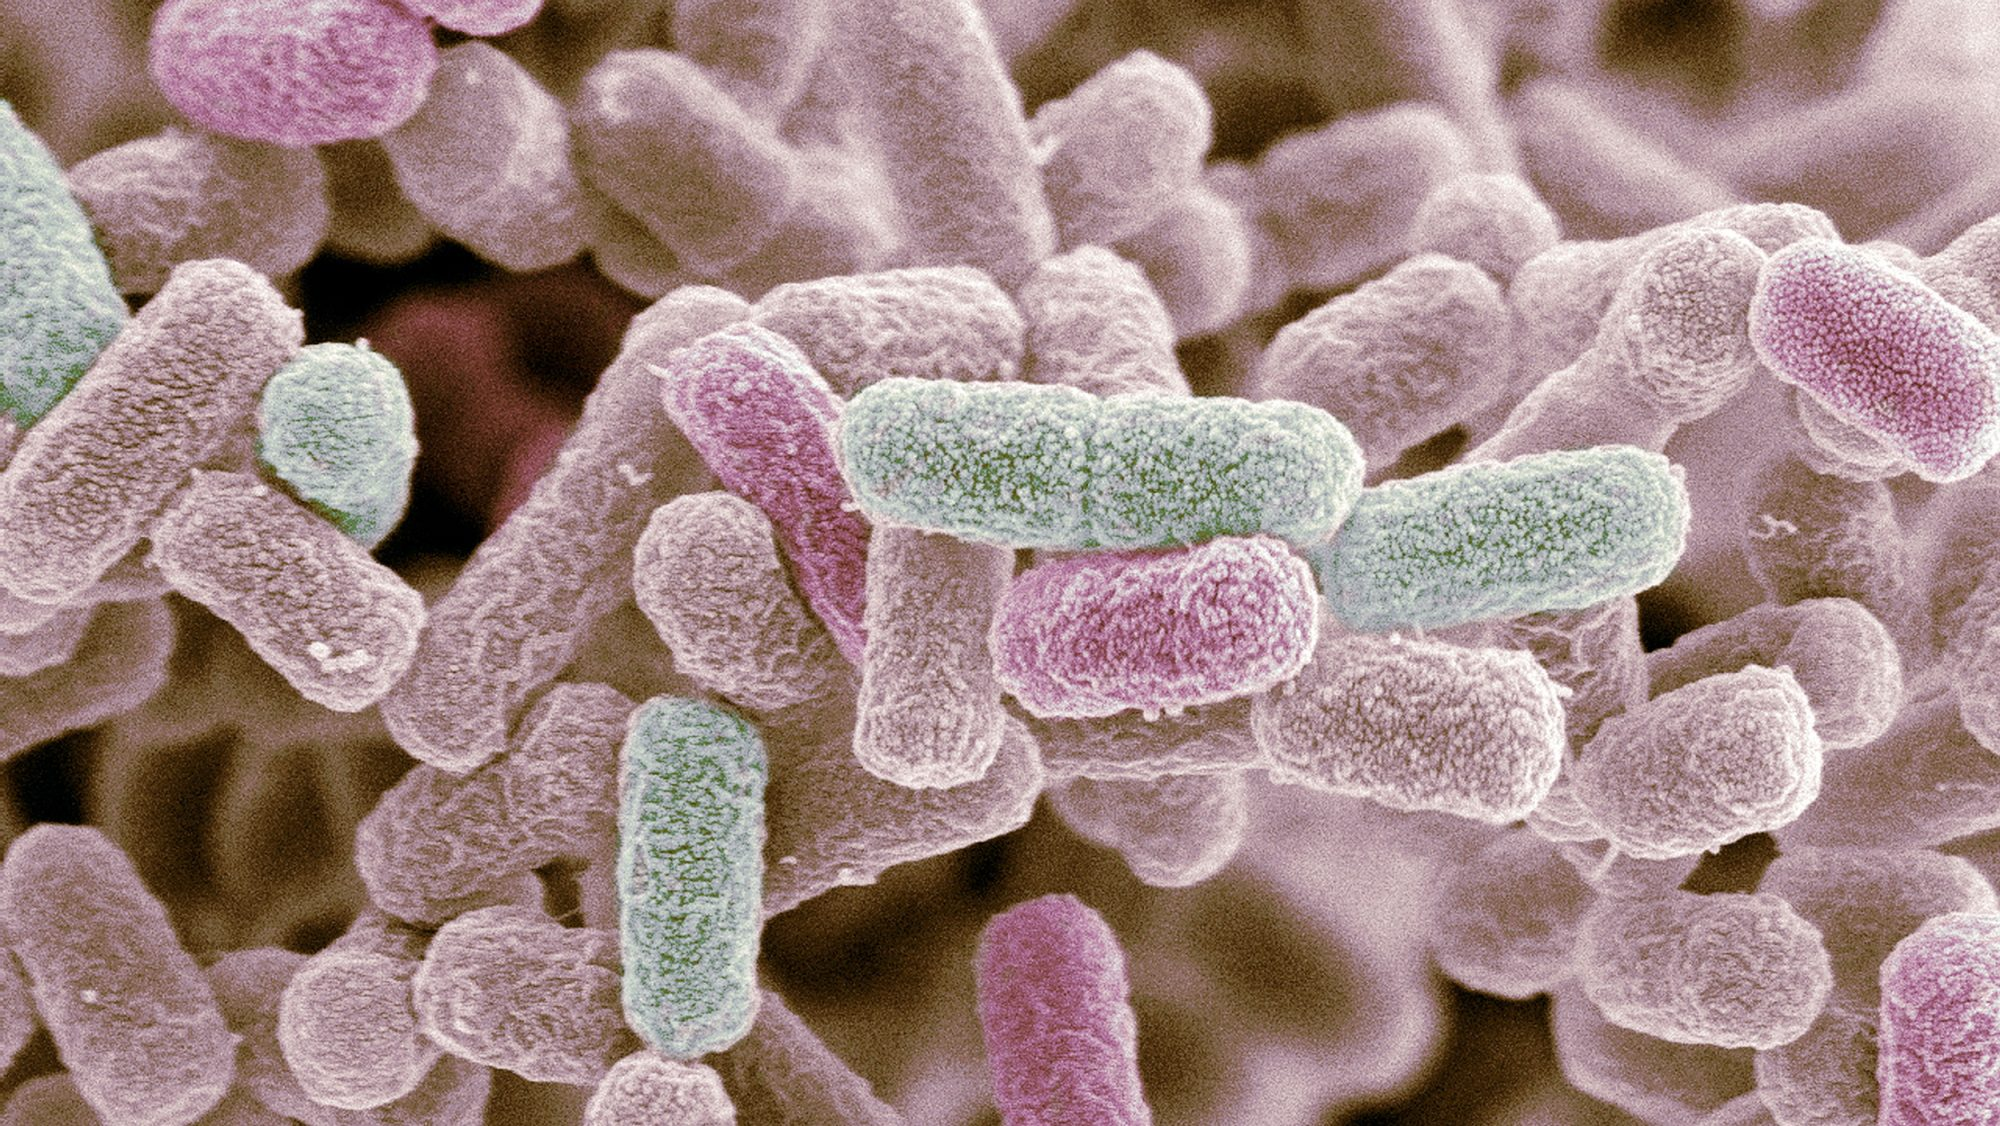 e-coli-outbreak-FT-BLOG0916.jpg